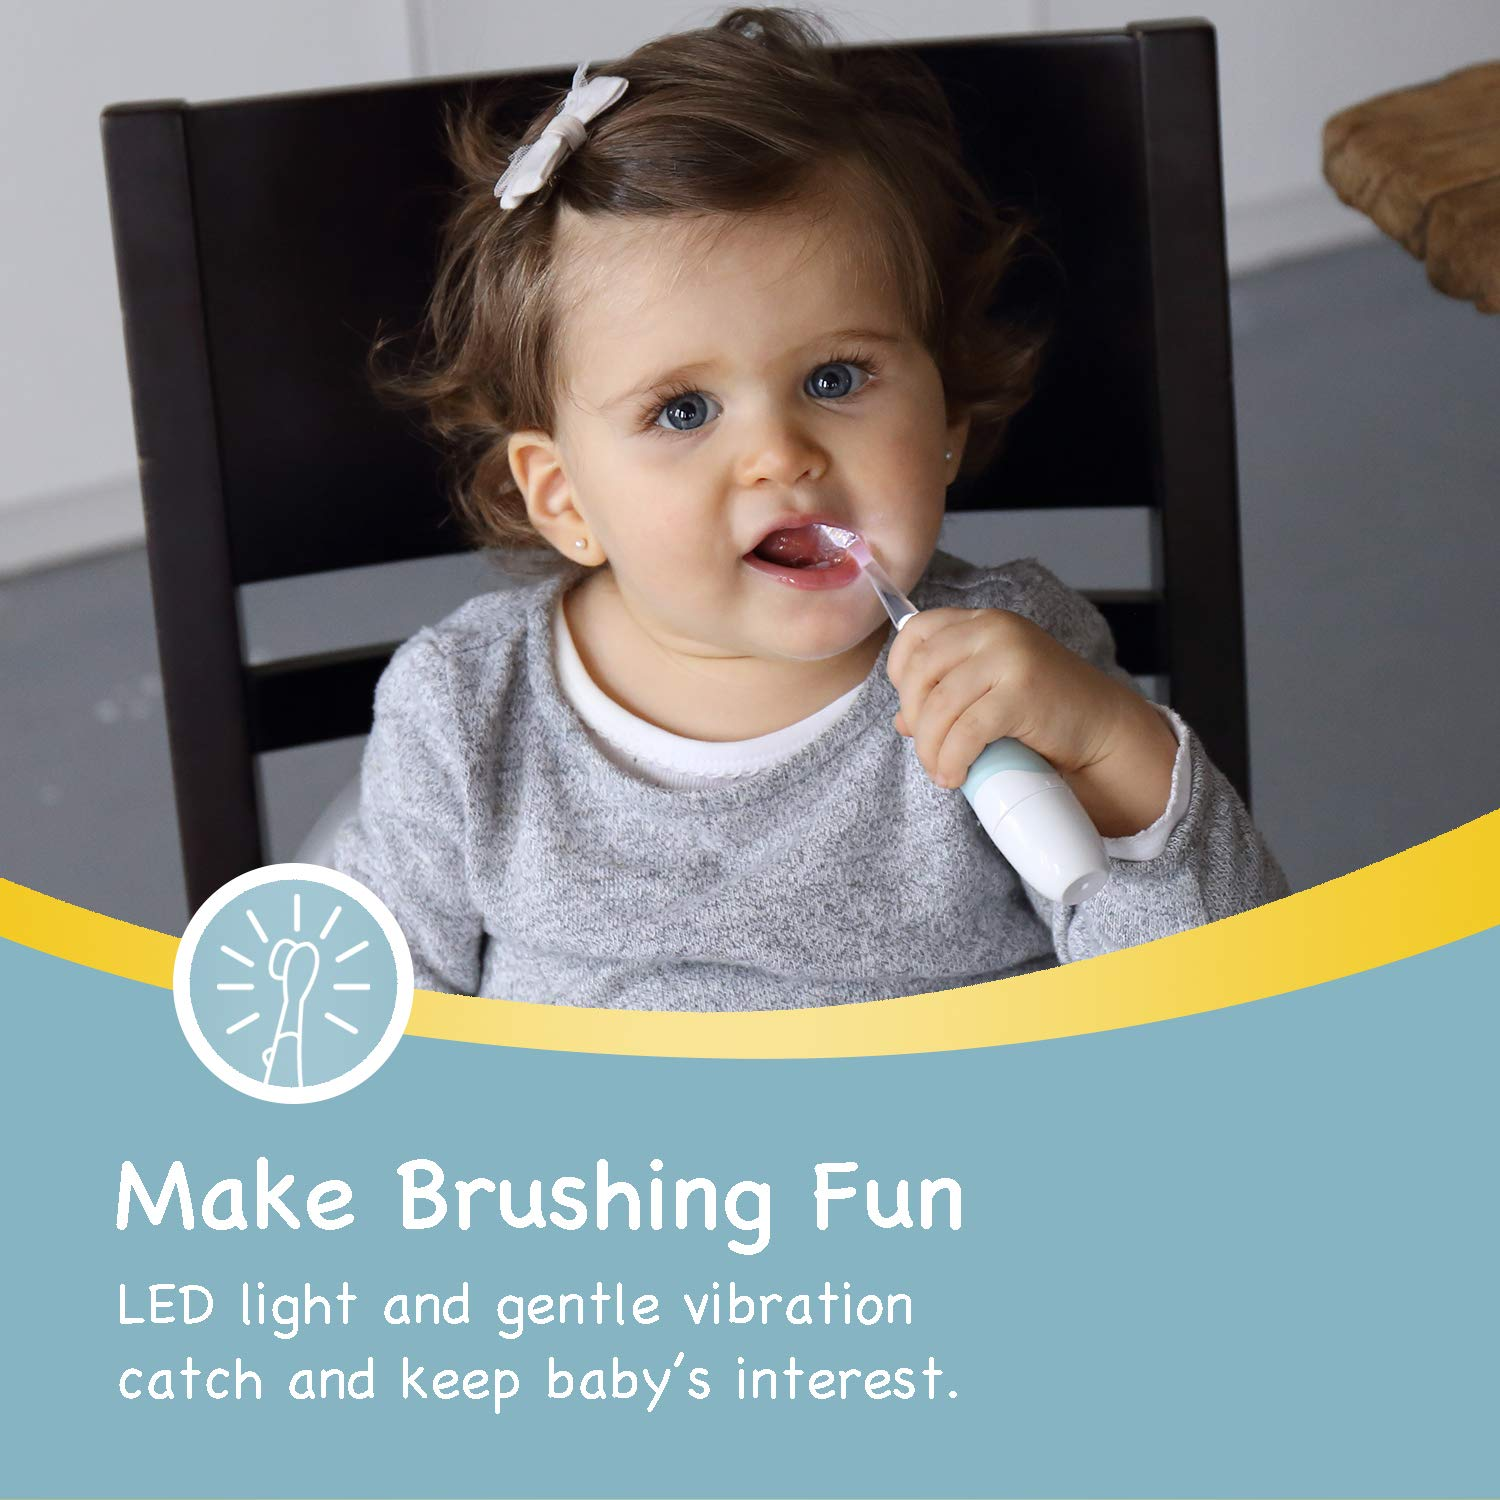 Papablic BabyHandy 2-Stage Sonic Electric Toothbrush for Babies and Toddlers Ages 0-3 Years by Papablic (Image #2)